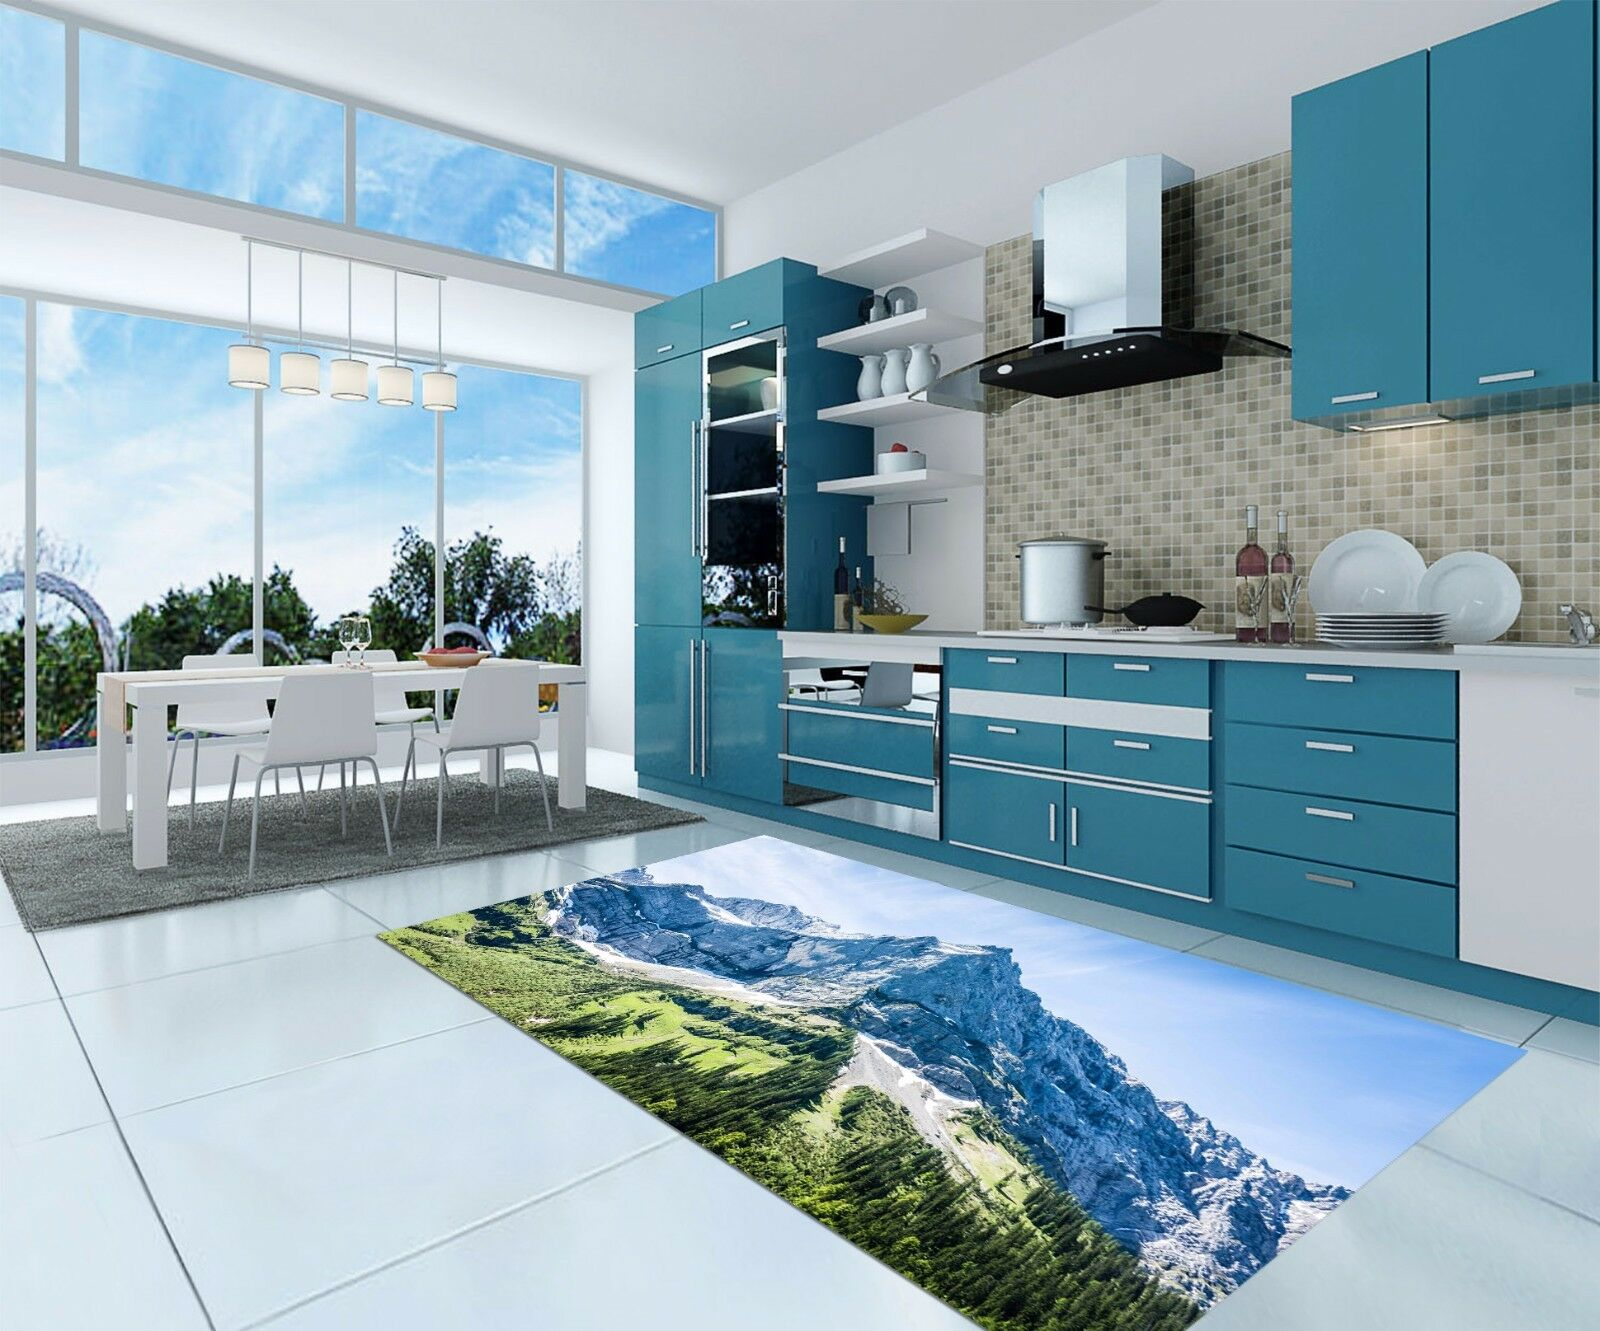 3D Sky Mountain 94 Kitchen Mat Floor Murals Wall Print Wall AJ WALLPAPER UK Kyra